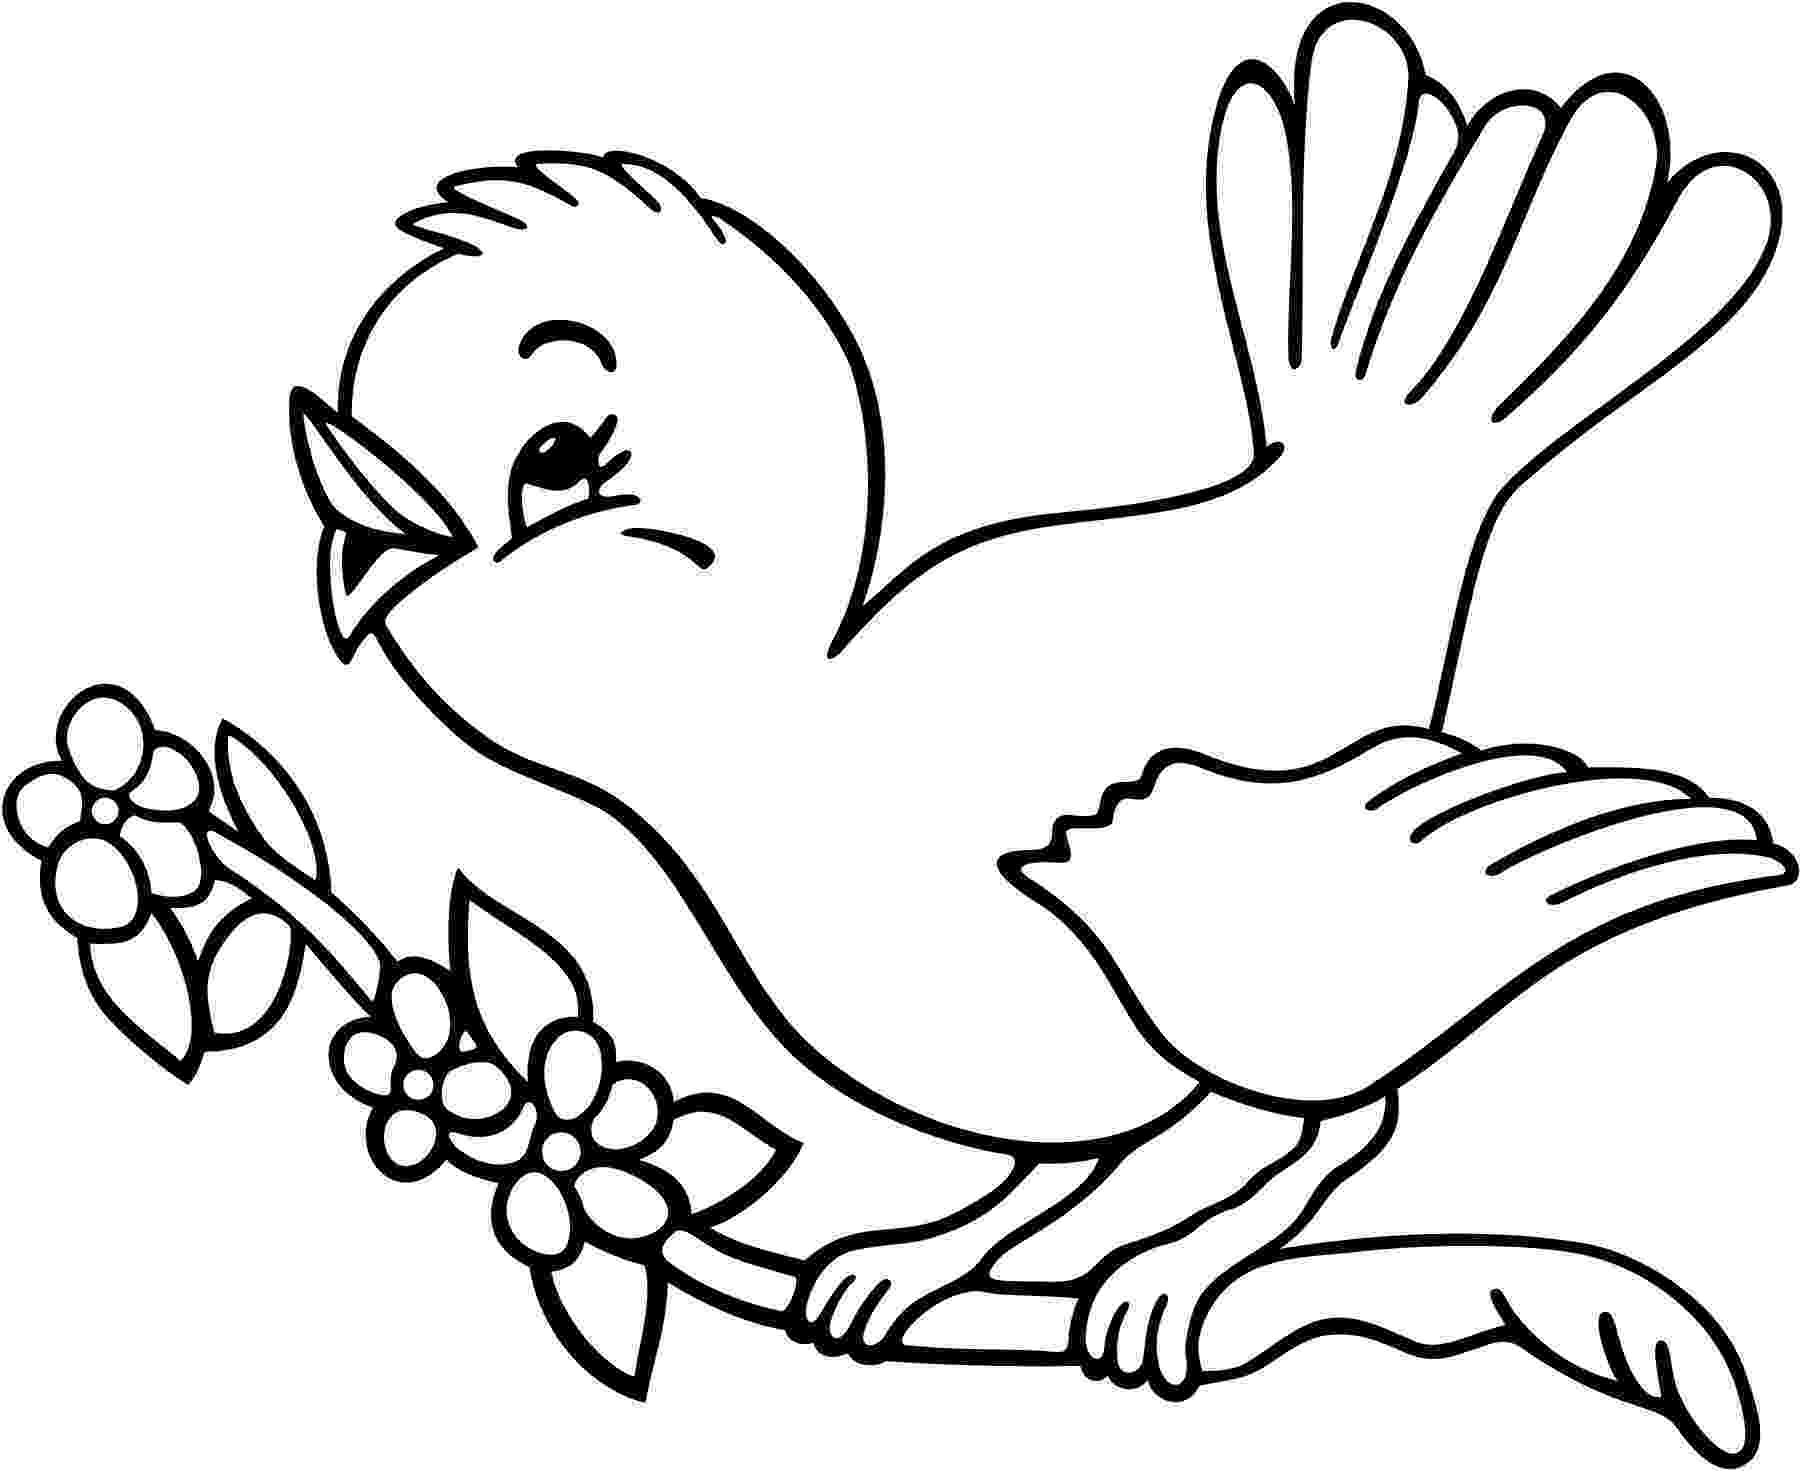 images of birds for colouring bird coloring pages 7 coloring kids images birds for colouring of